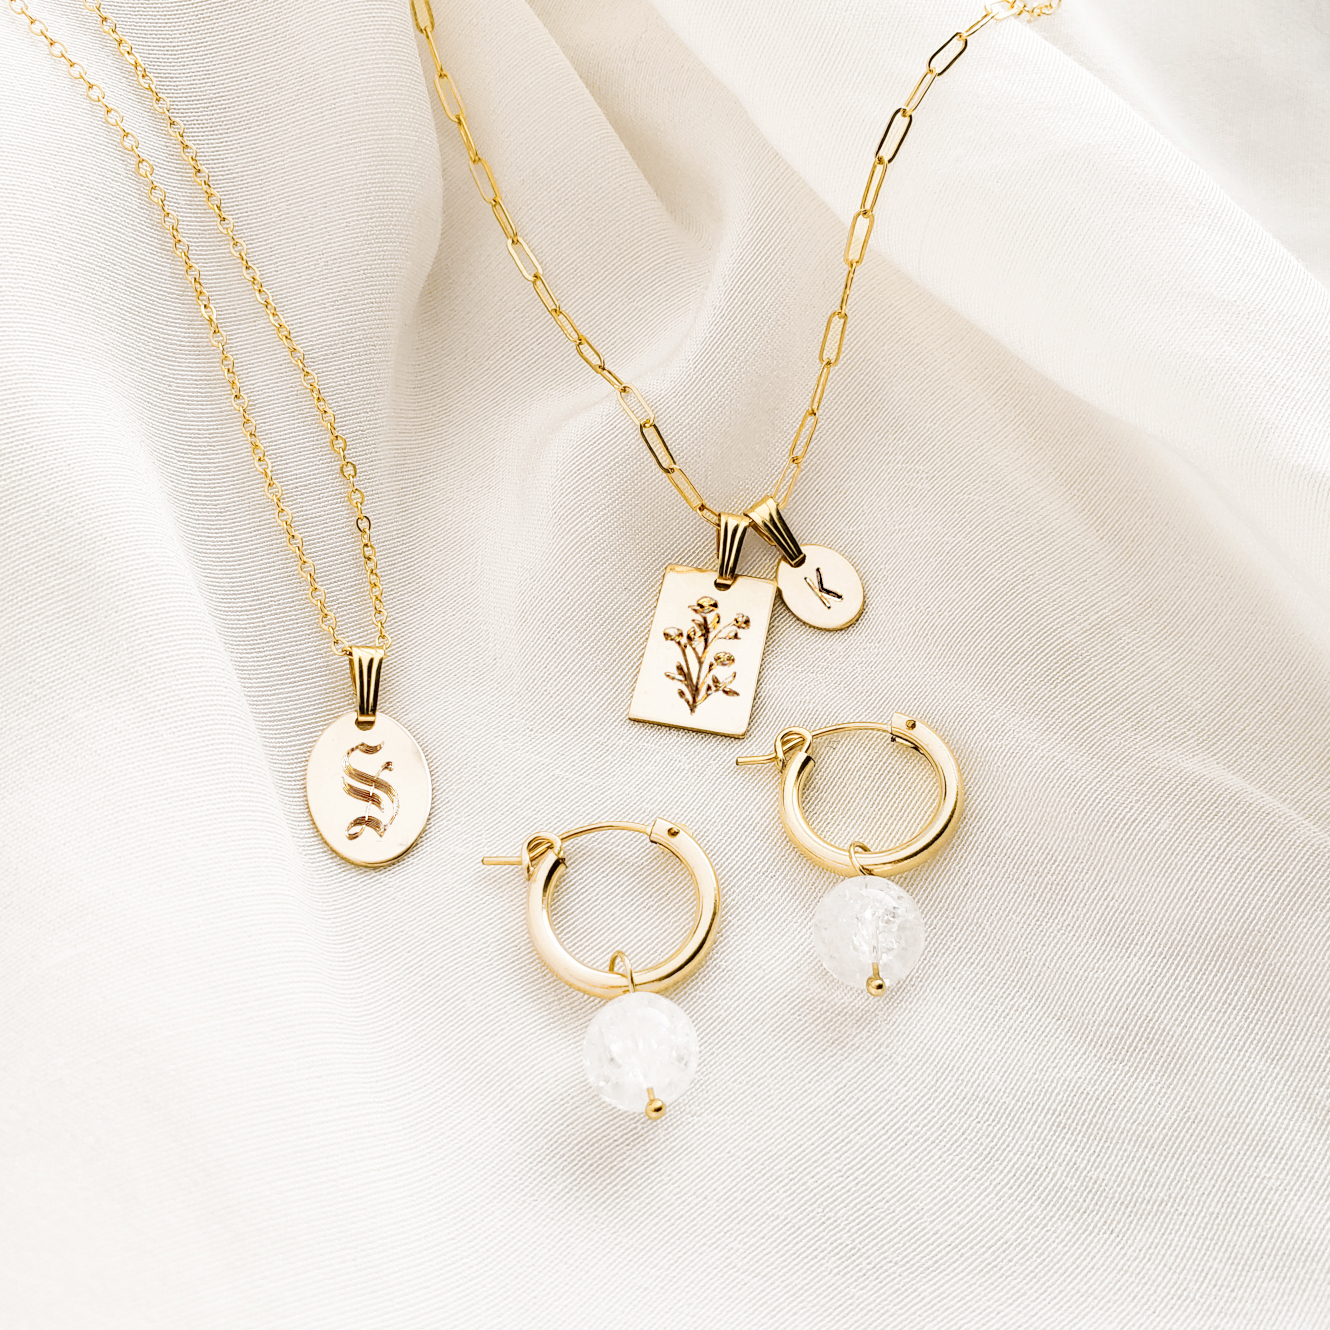 Personalized Oval Necklaces